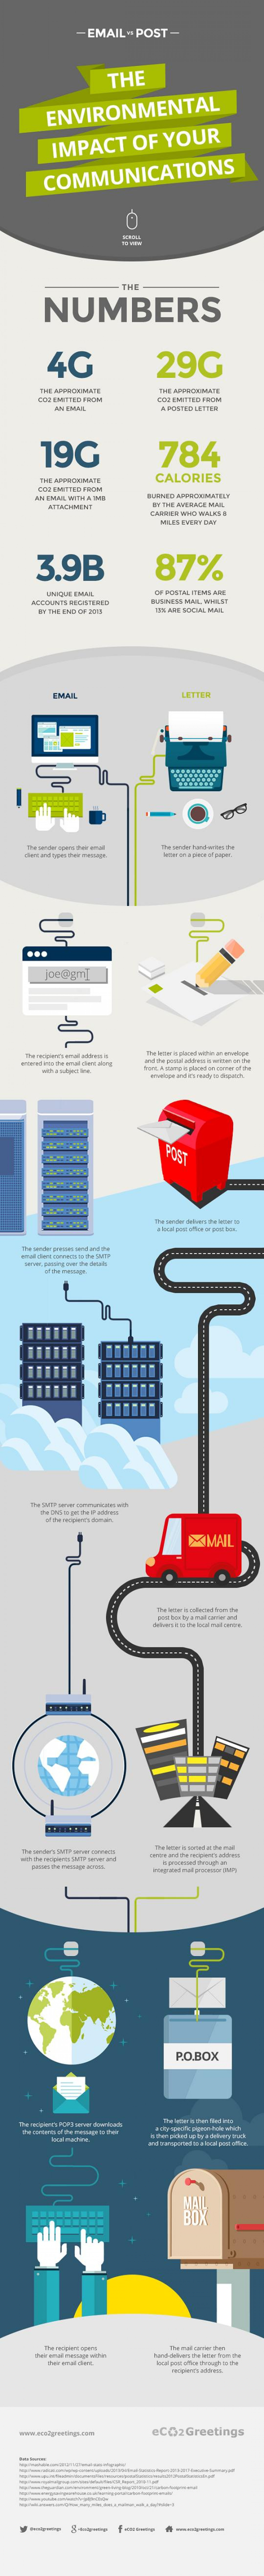 E-Mail vs Post :The Enviornmental Impact of your Communications  Infographic